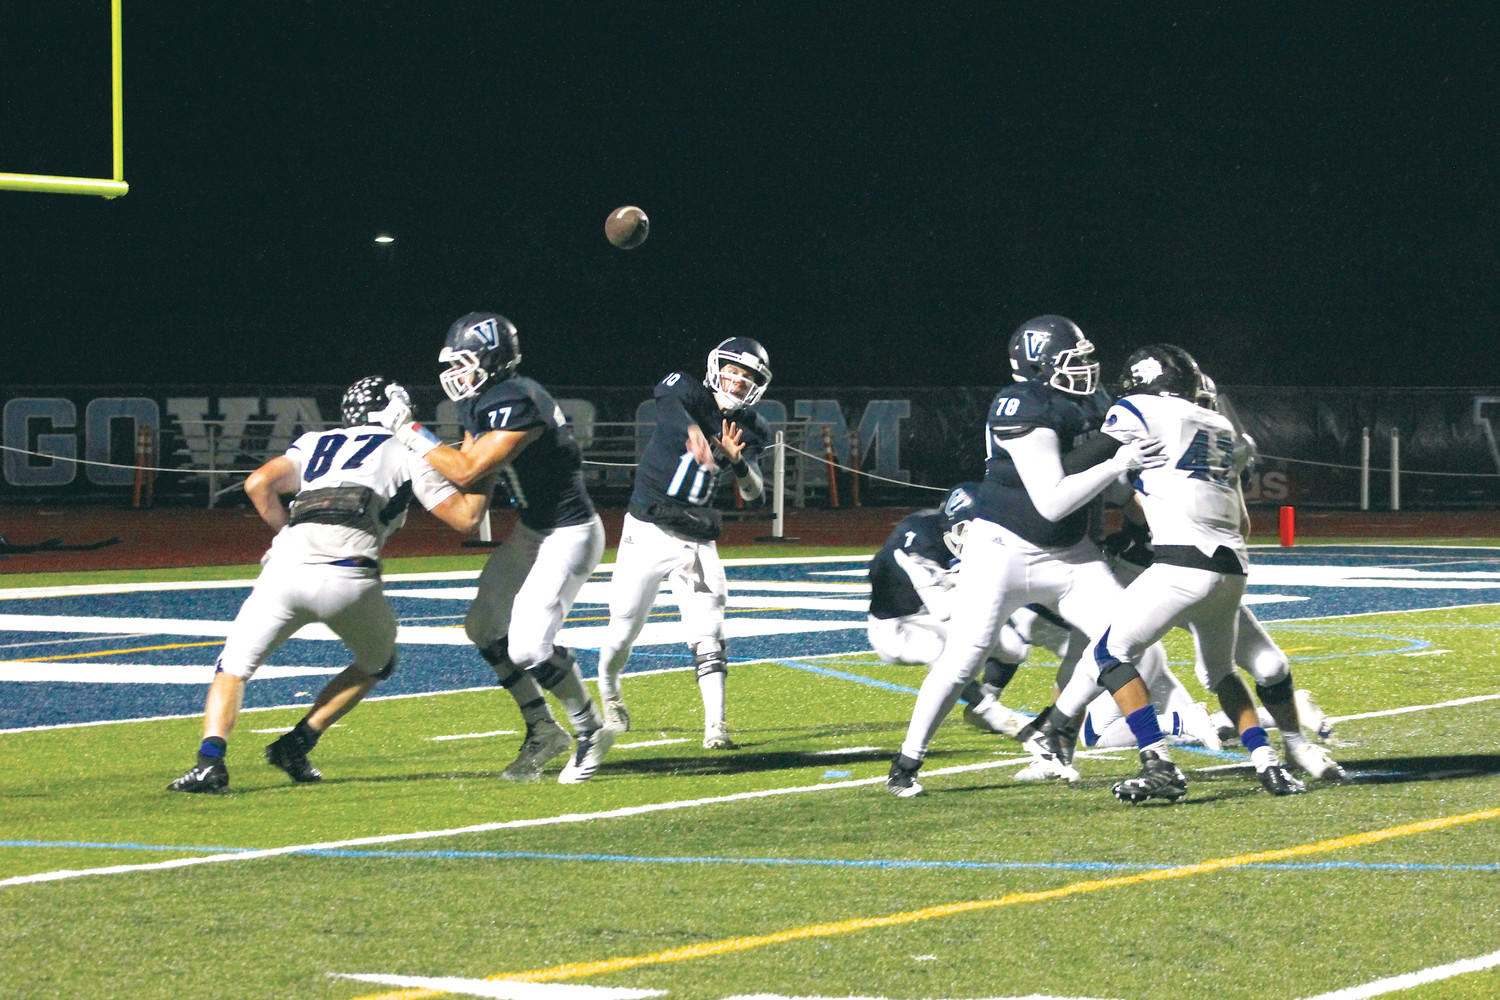 Valor Christian senior quarterback Blake Stenstrom throws a pass during the Nov. 17 Class 5A quarterfinal playoff game against Grandview. Stenstrom completed six of 12 passes for 59 yards and ran for 18 yards but Grandview upset top-seeded and previously unbeaten Valor, 28-16, on a cold night with rain and snowy conditions.